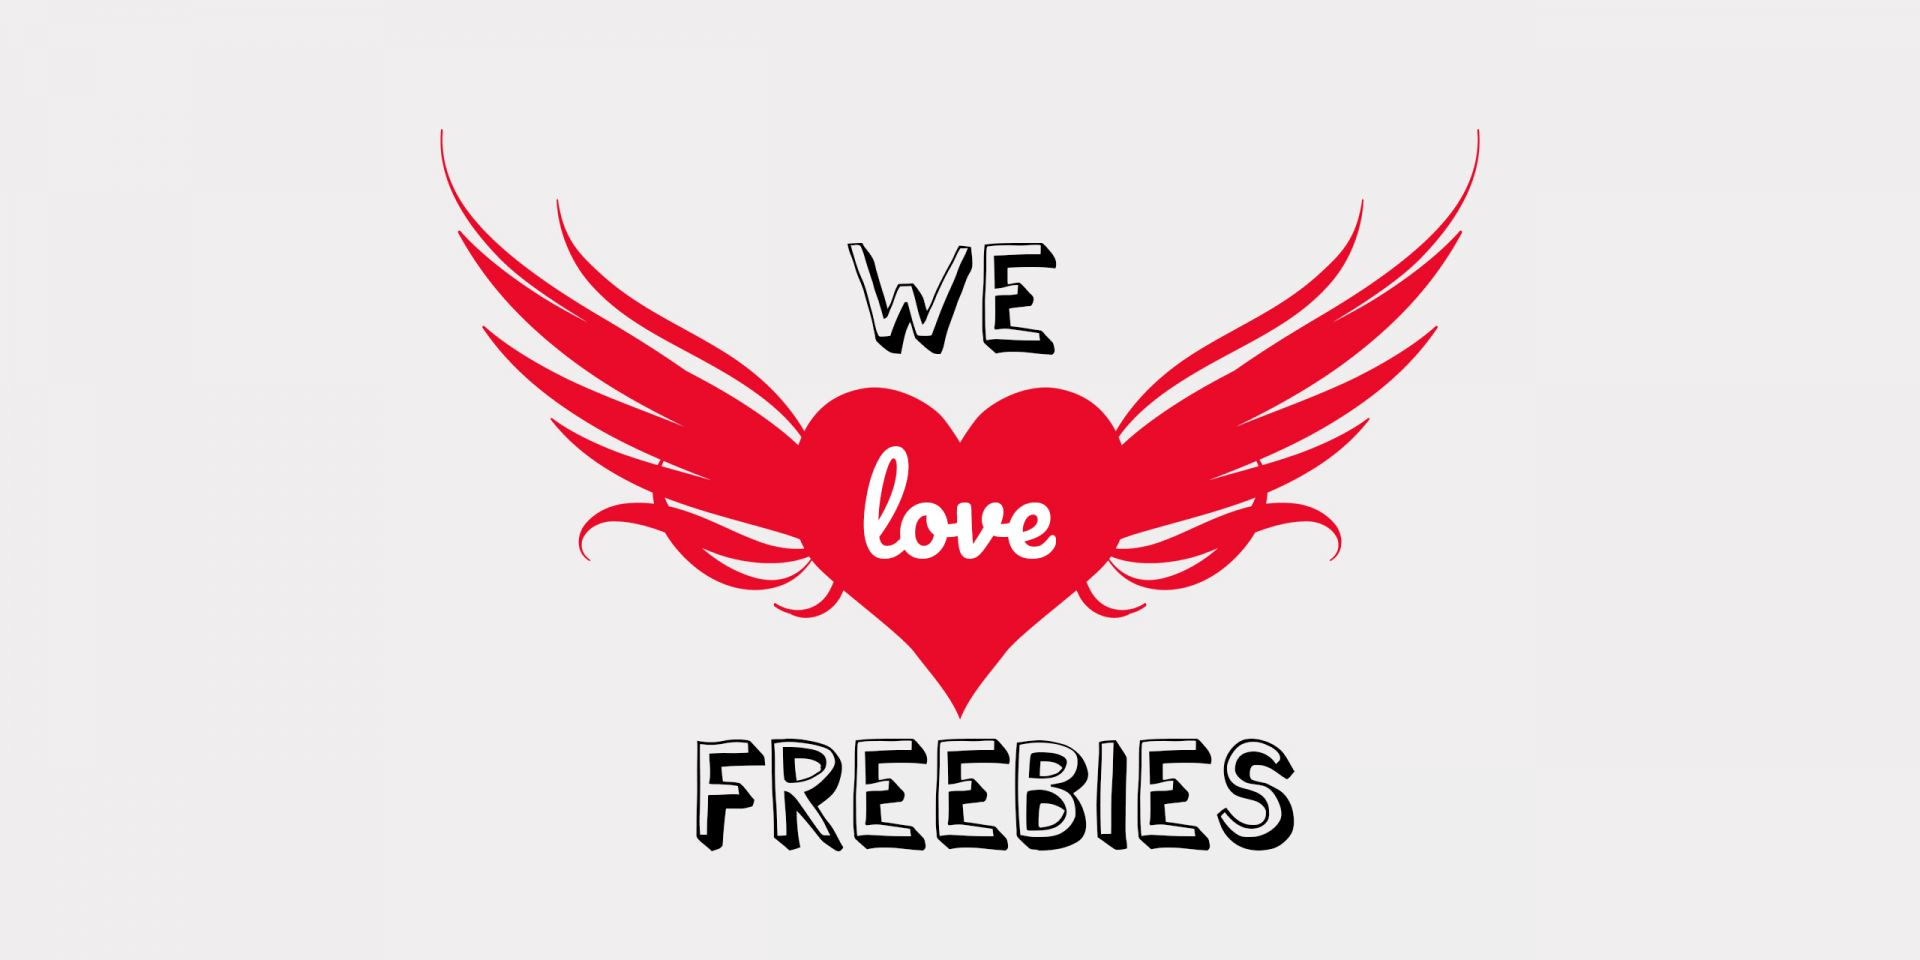 freebies-machine-embroidery-designs-category_1920x1920